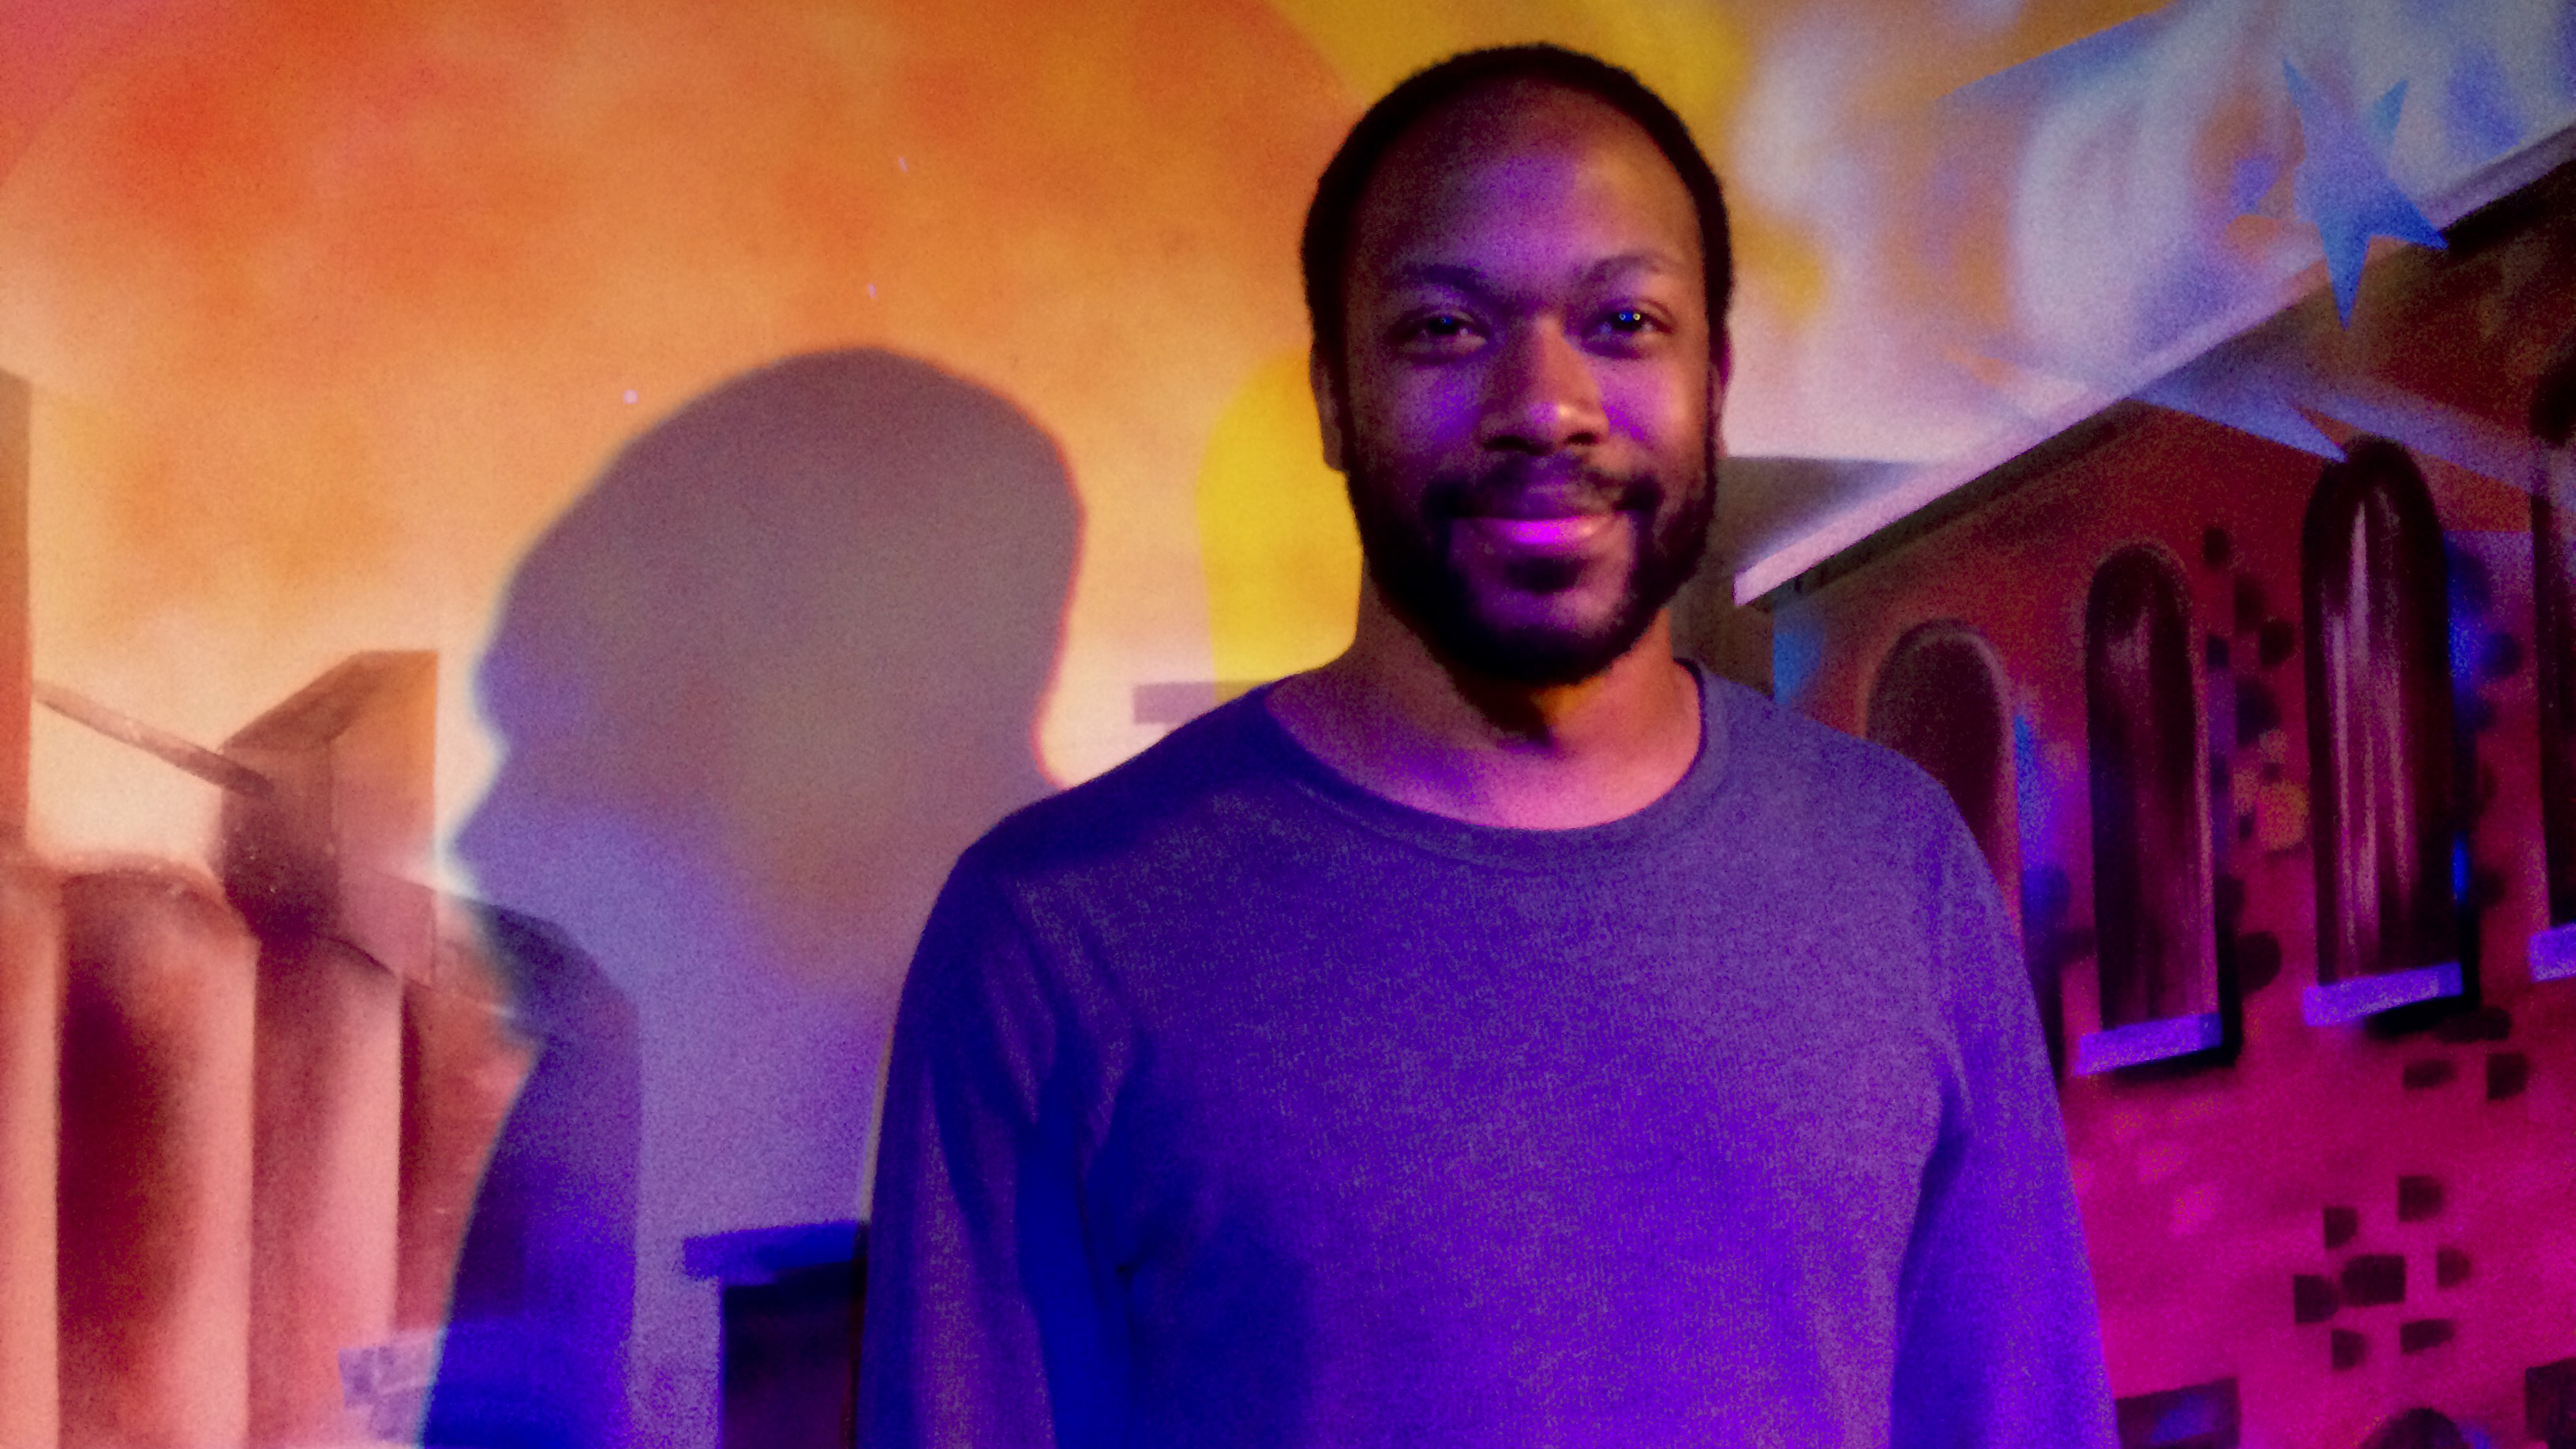 Kevin Thomas Jr. was named Buffalo's Funniest Person in 2016 at Helium Comedy Club.